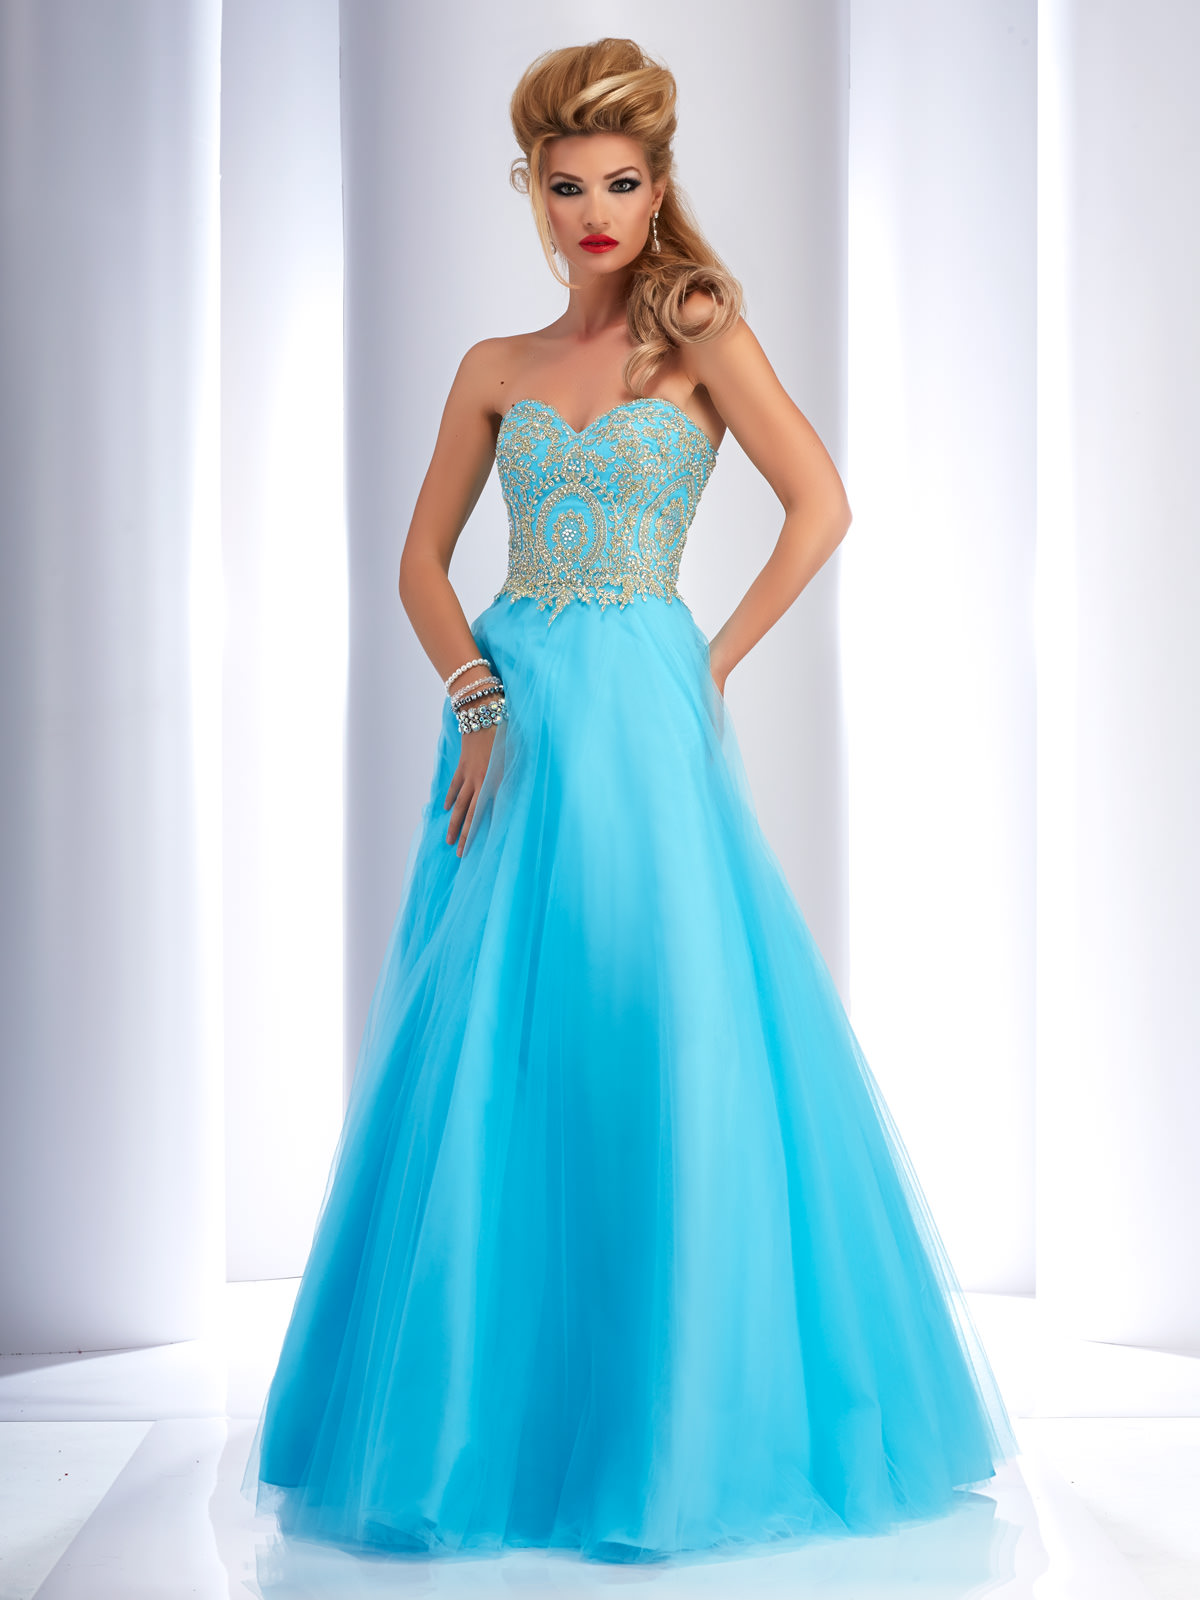 Clarisse 2702 Prom Dress | Promgirl.net